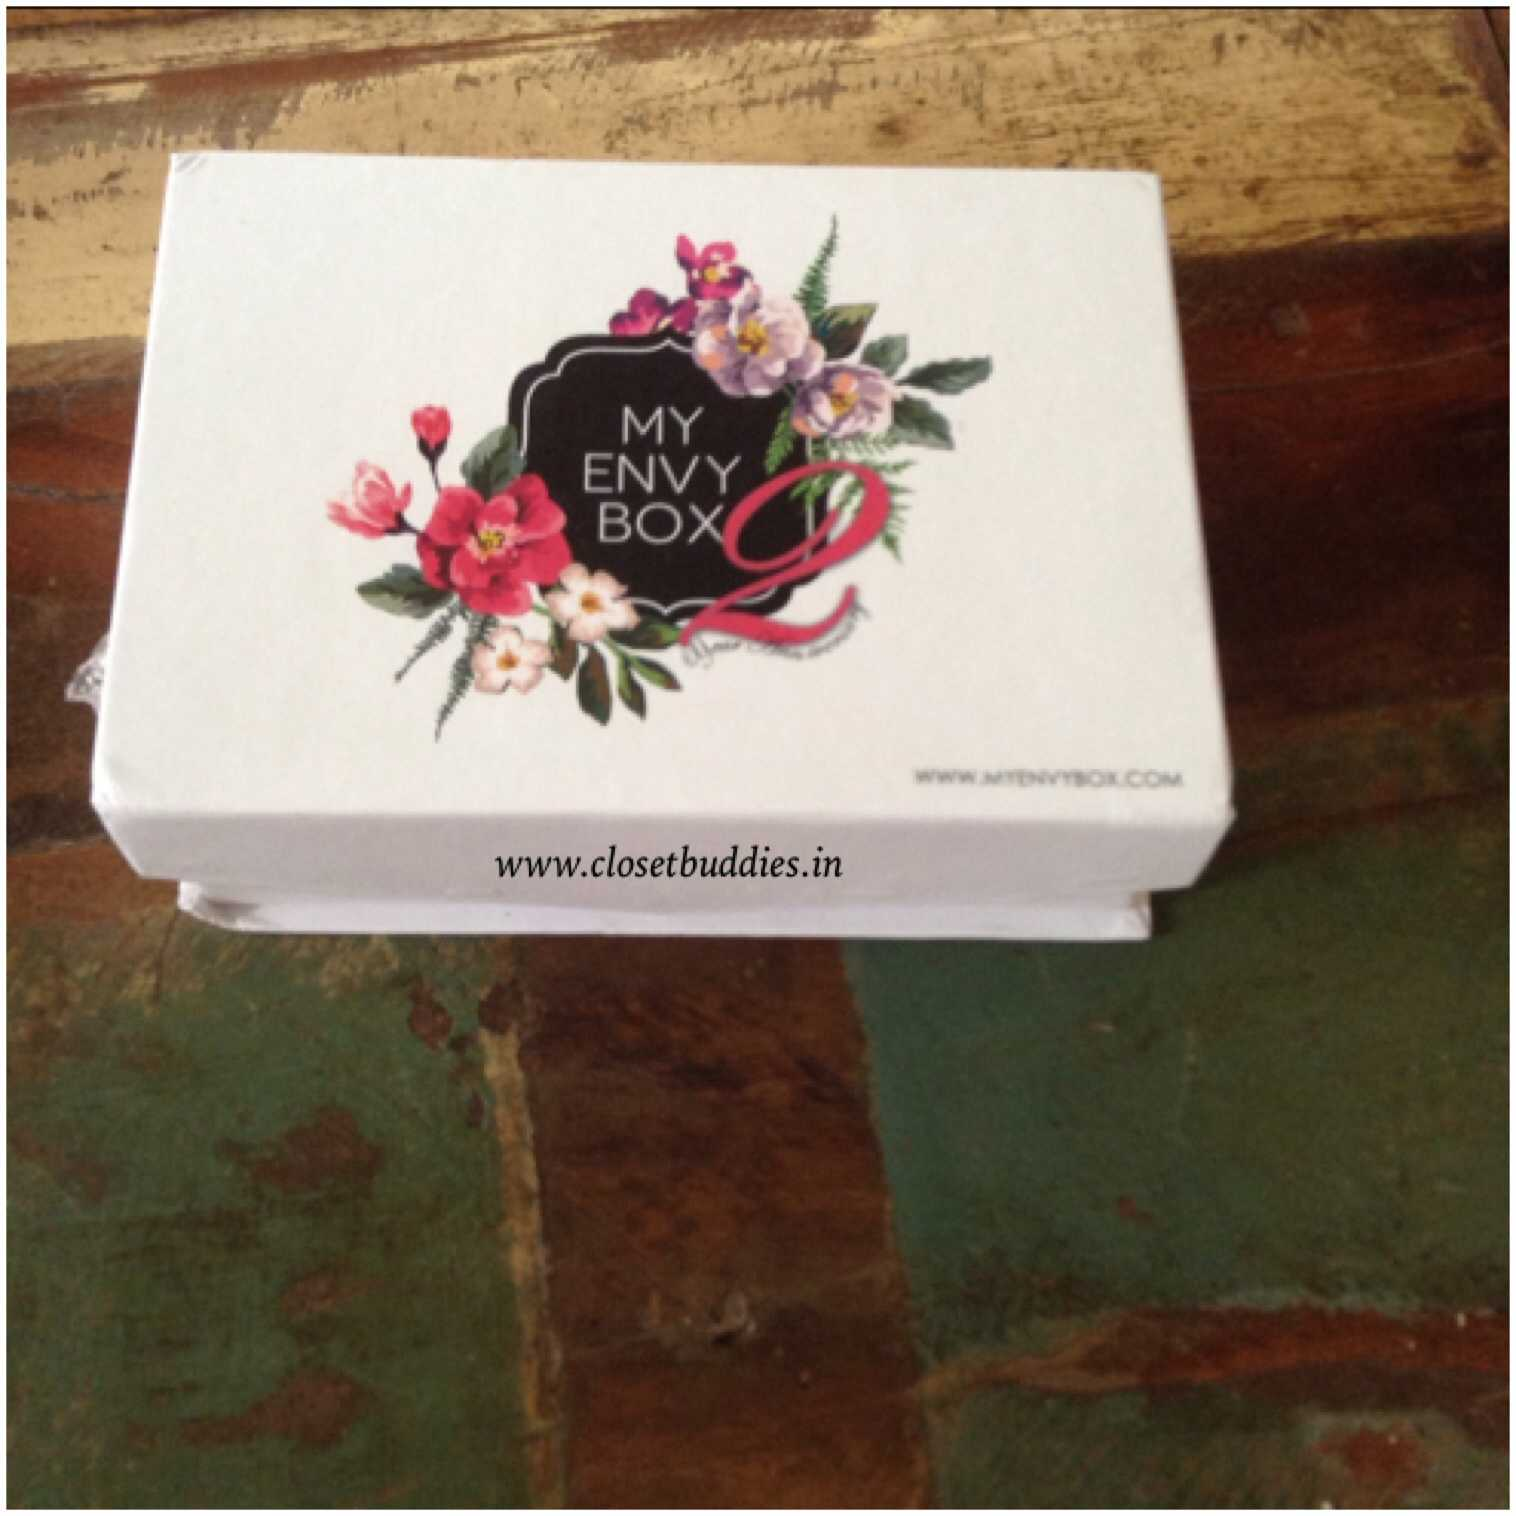 image5 - My Envy Box October 2015 Review